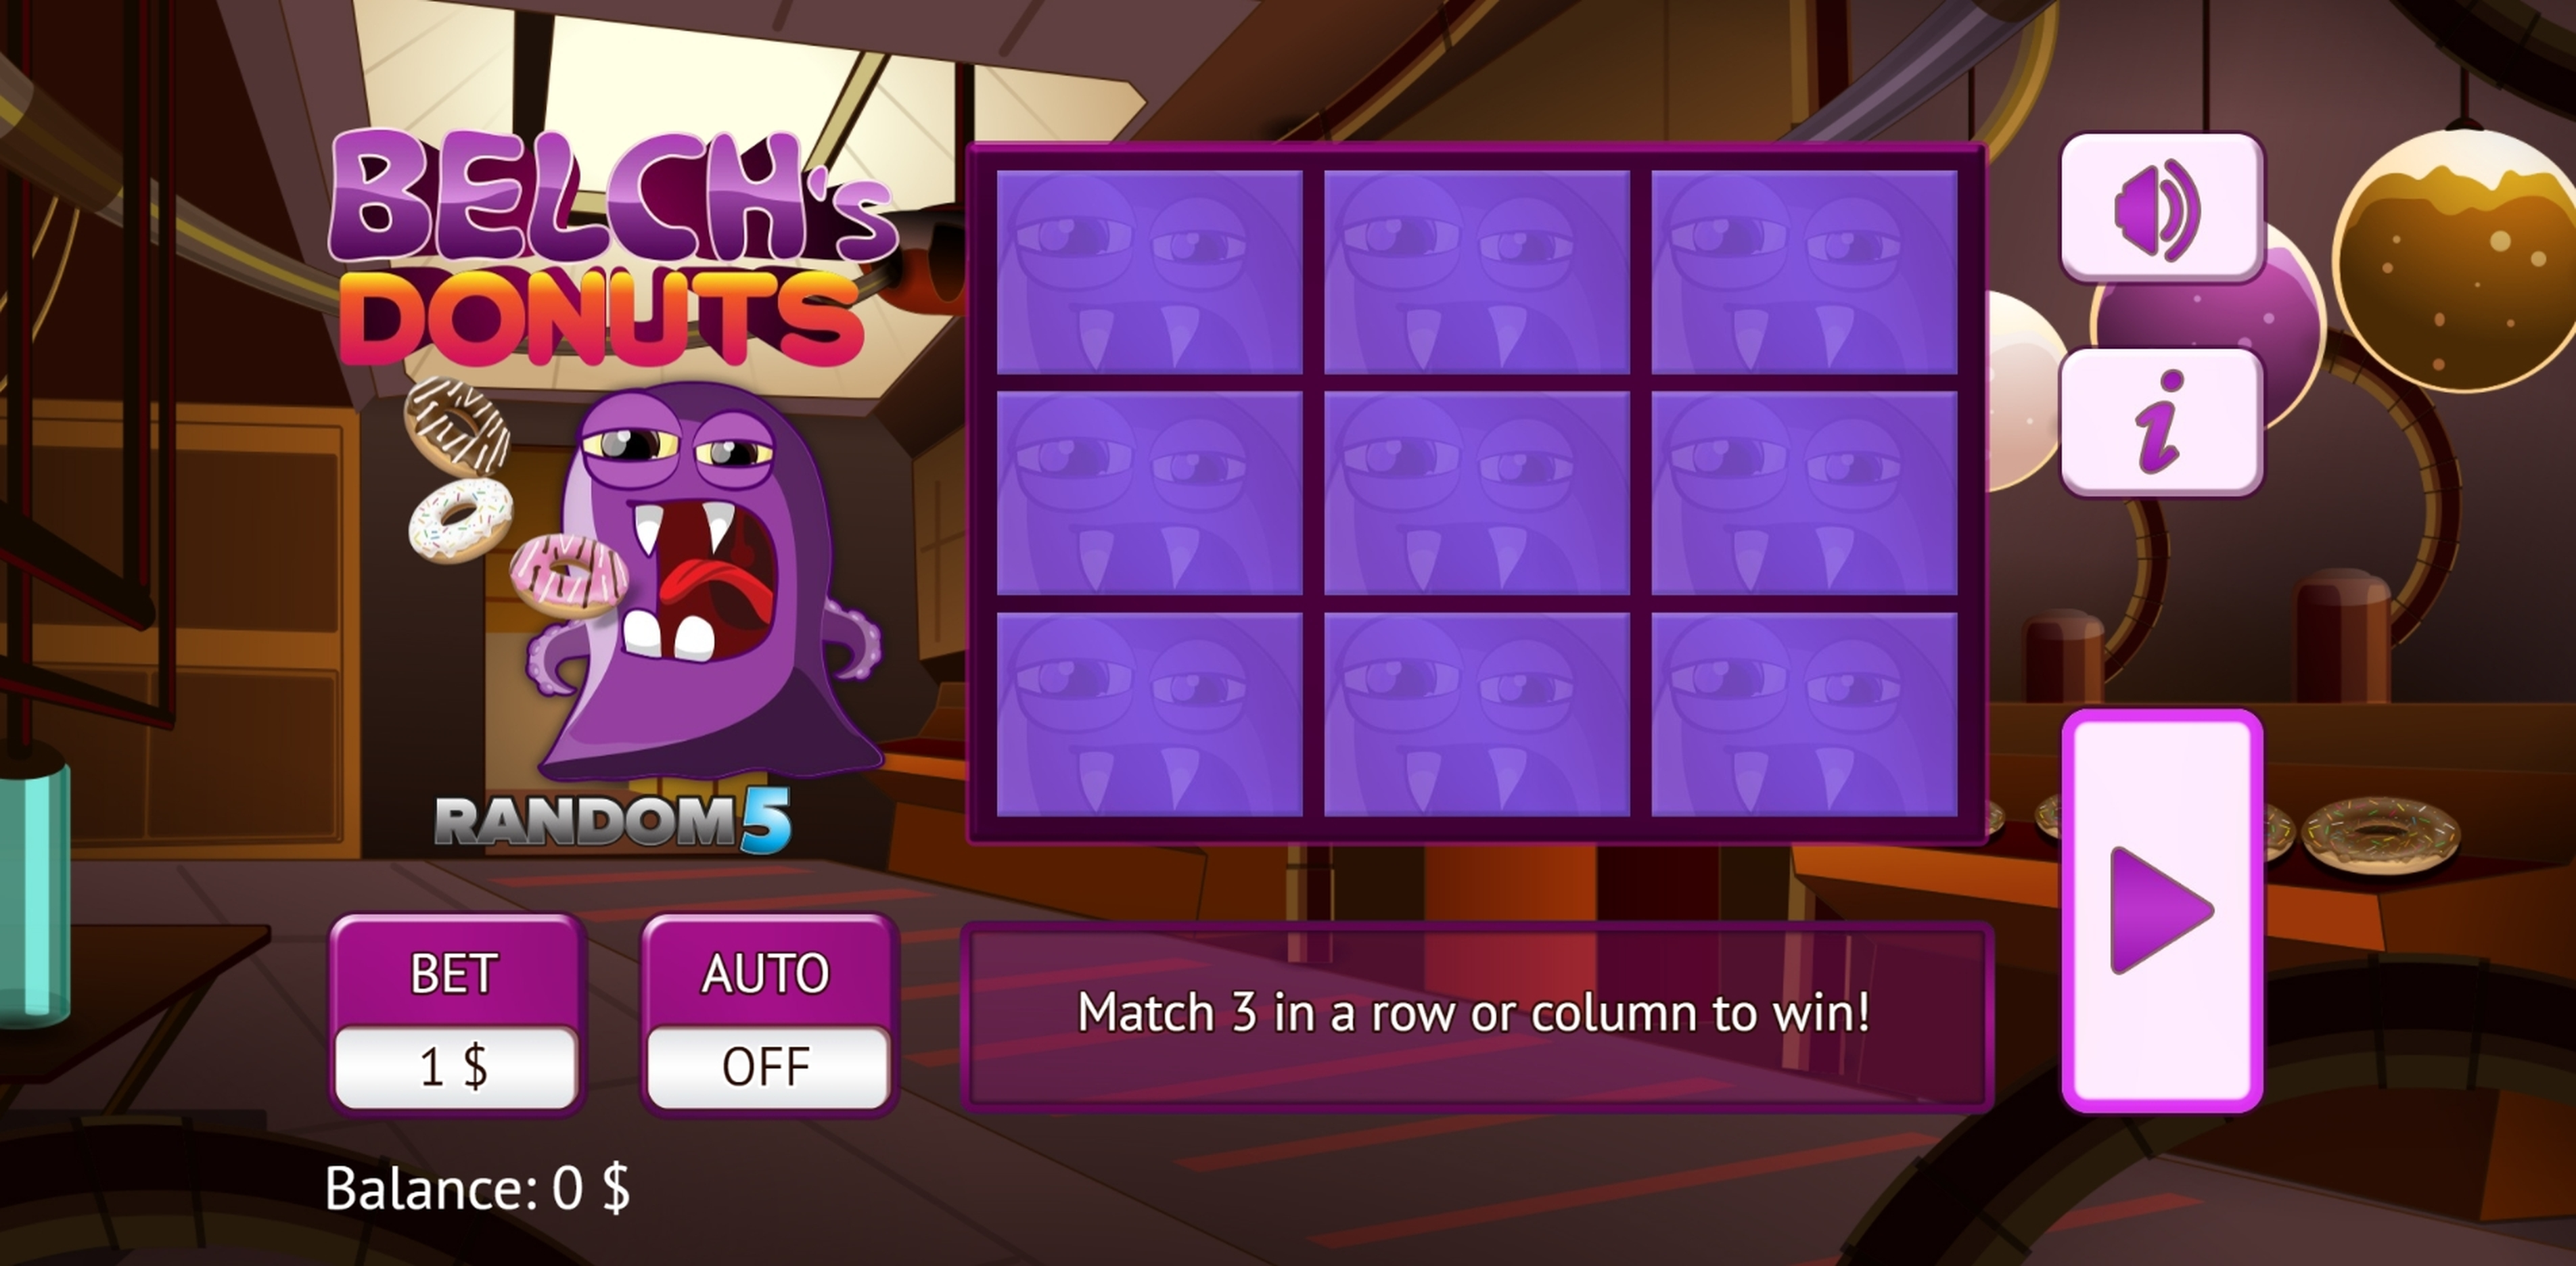 Play Belch's Donuts Free Casino Slot Game by Vermantia